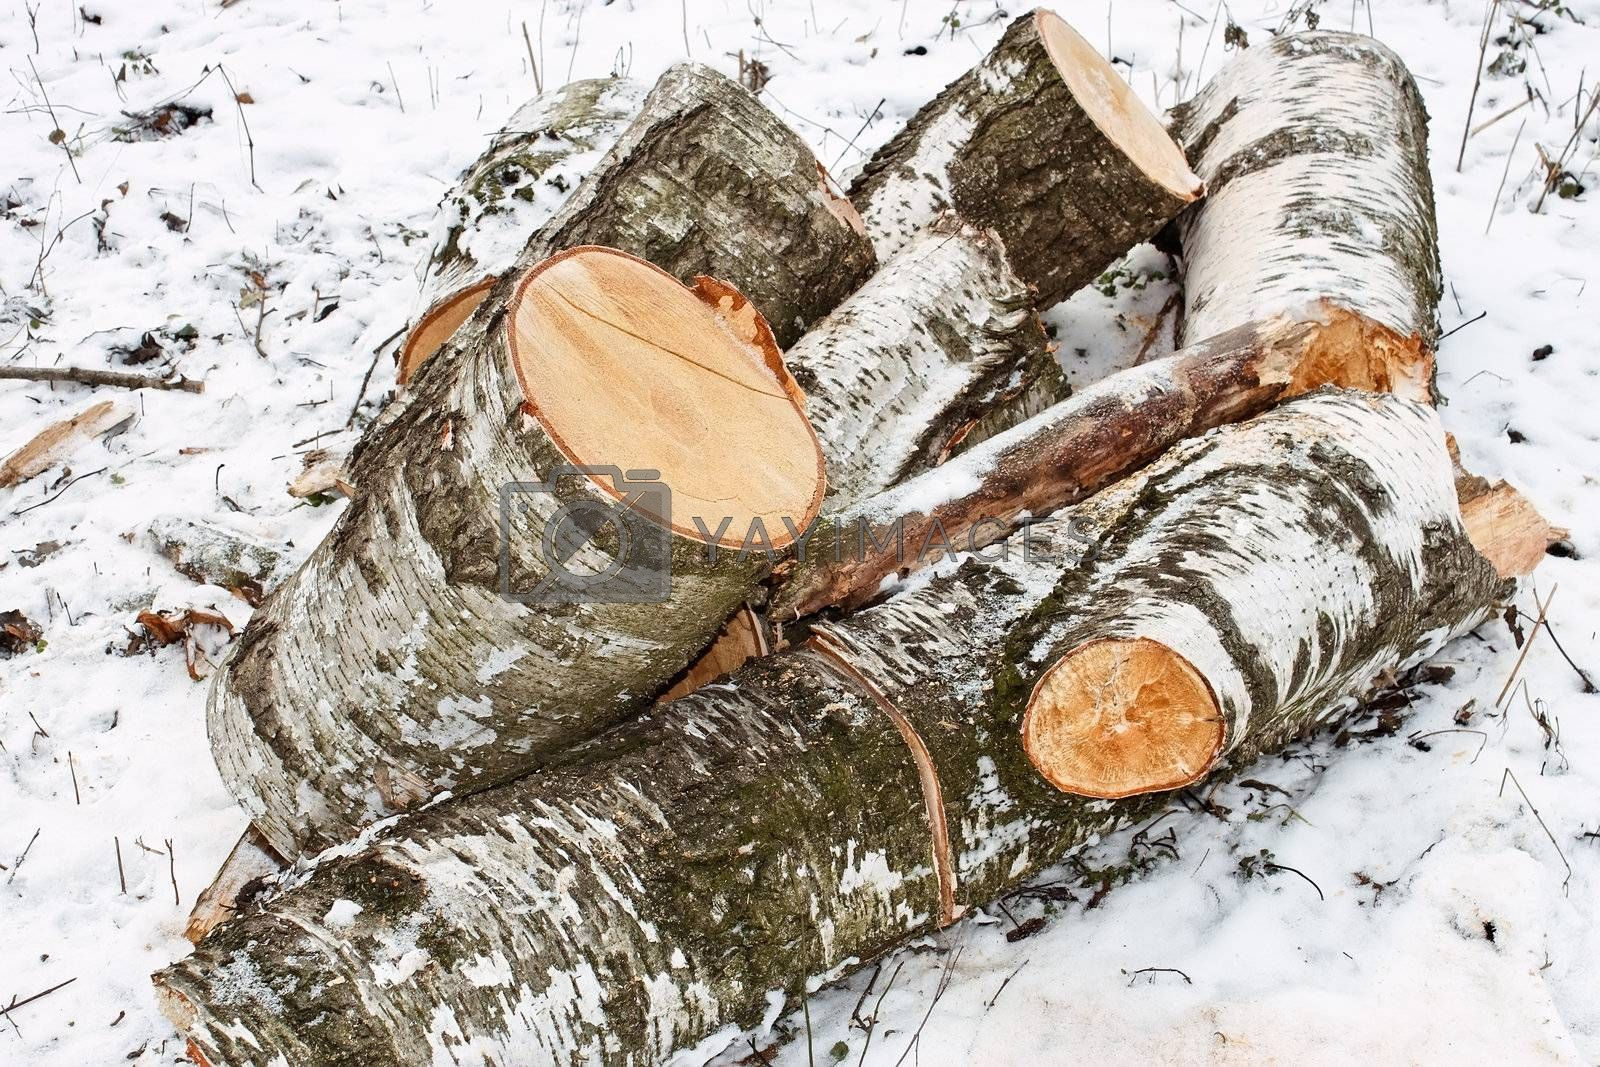 Pile of cut birch logs on the ground covered with snow